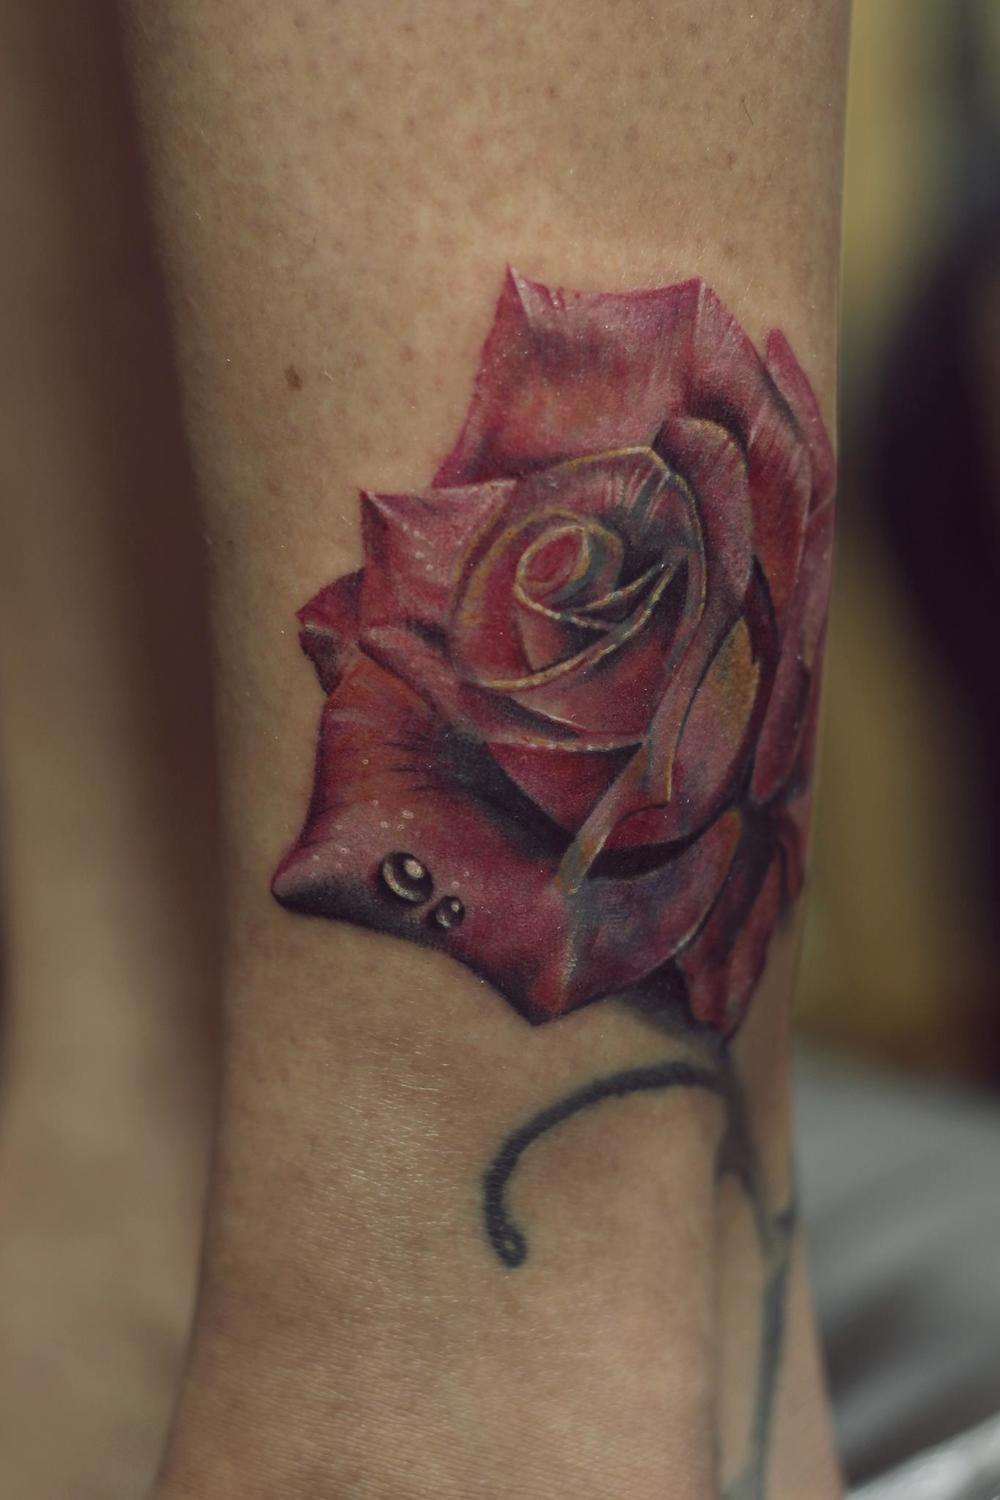 Realistic Rose - Cover up Tattoo by Eric Jason Dsouza